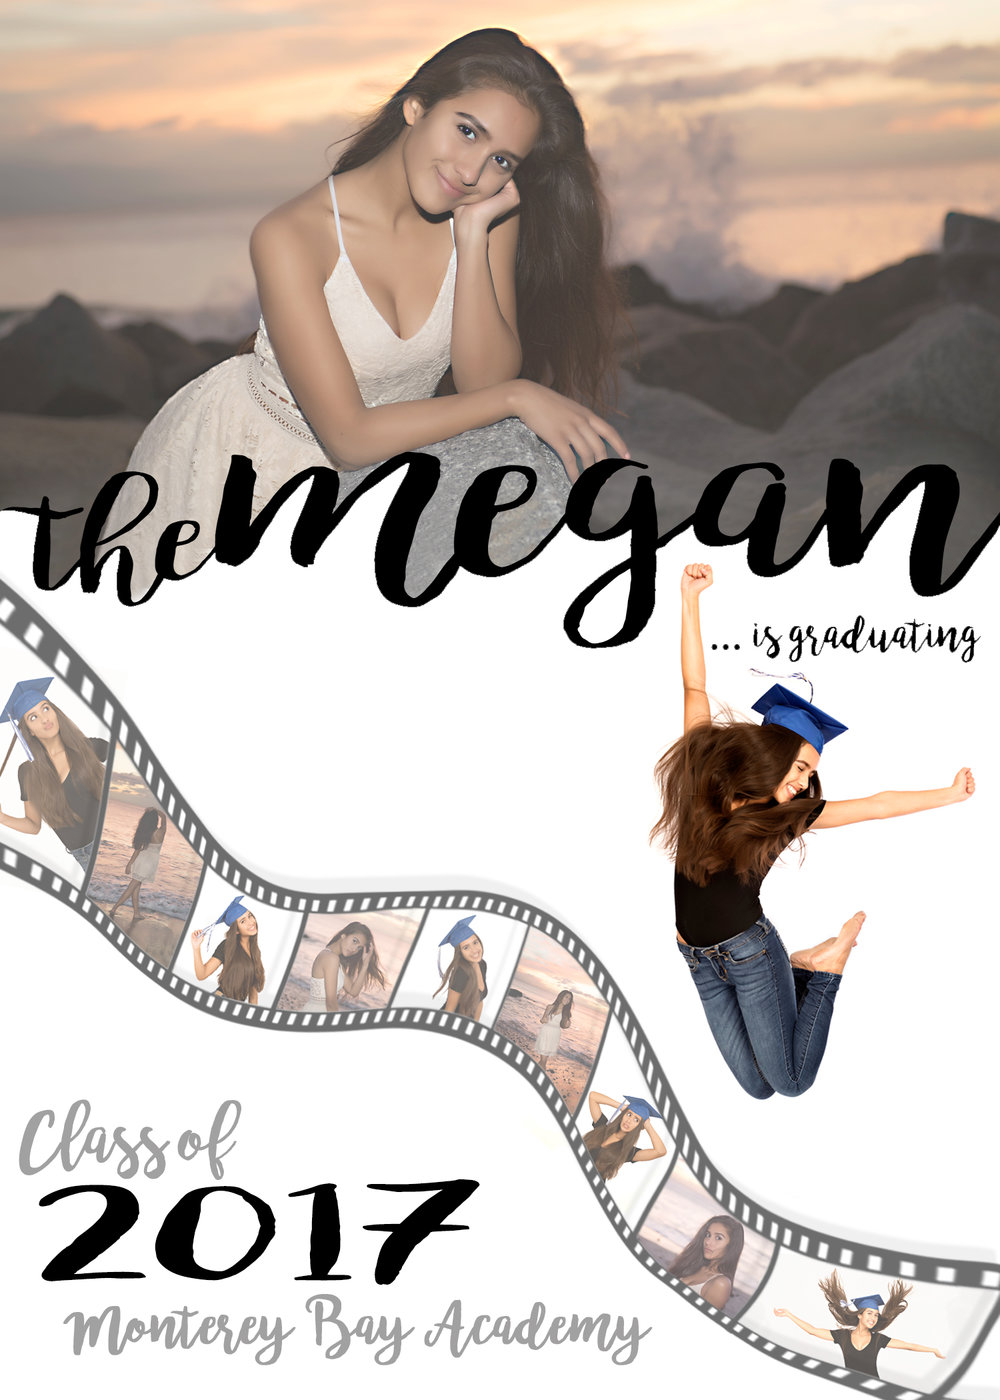 Megans Grad Announcement.jpg